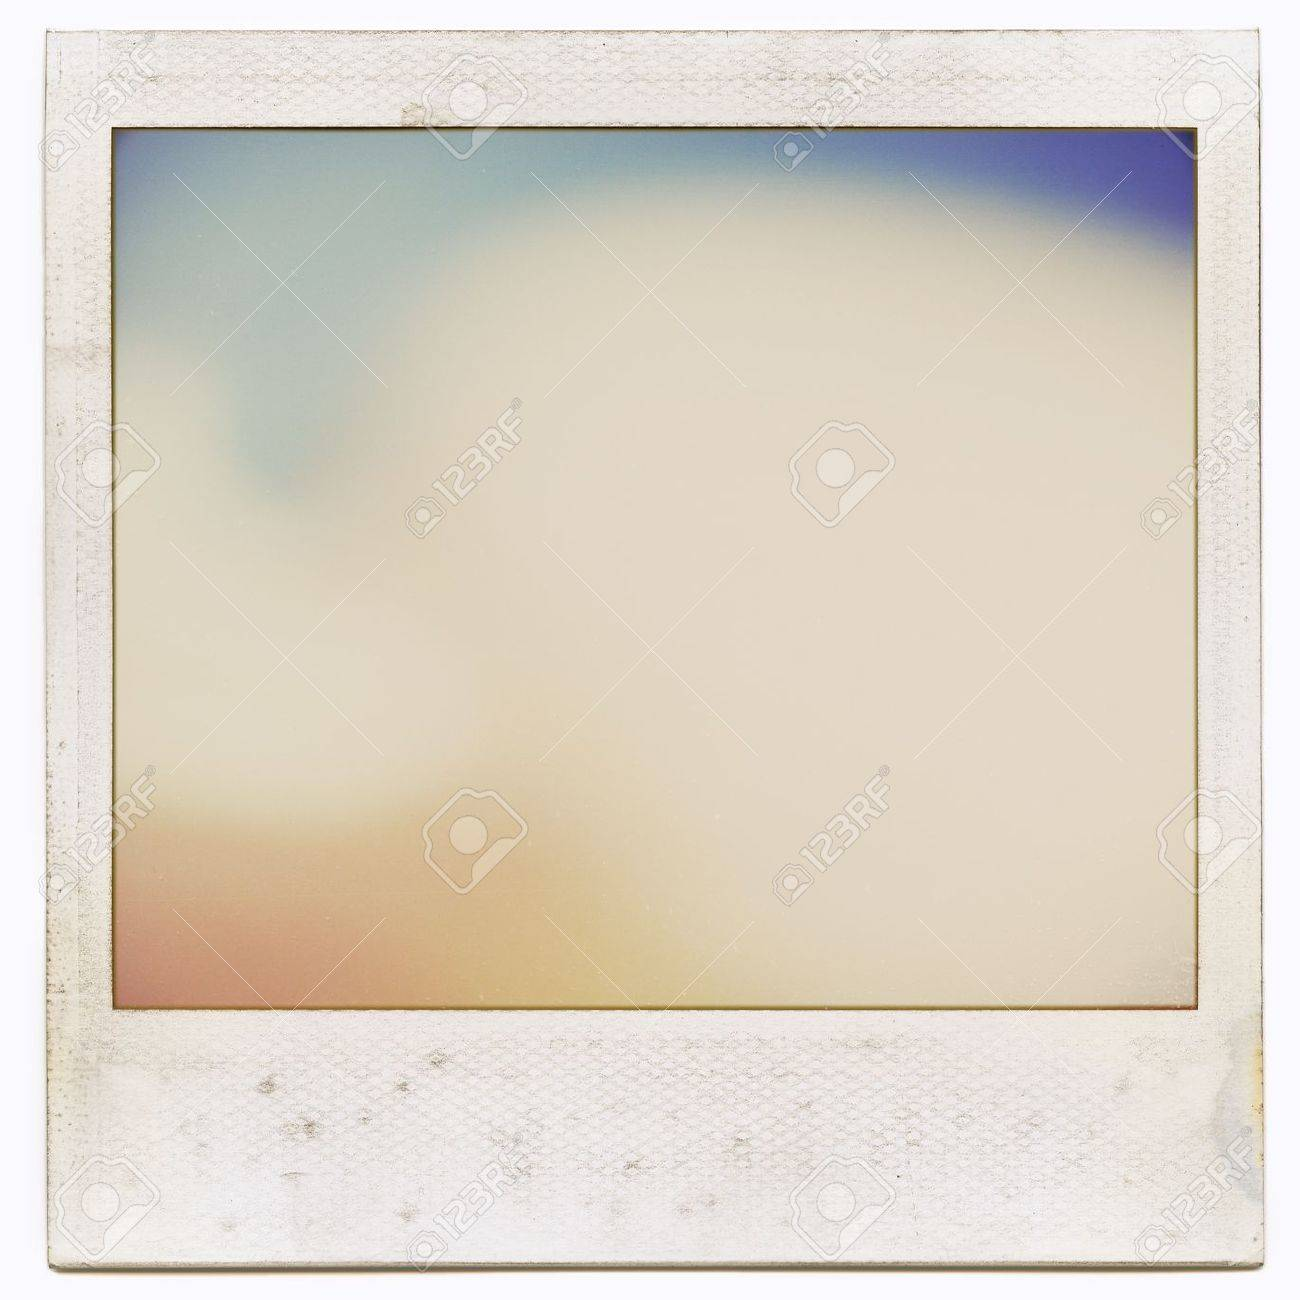 designed grungy instant film frame with abstract filling isolated on white kind of background